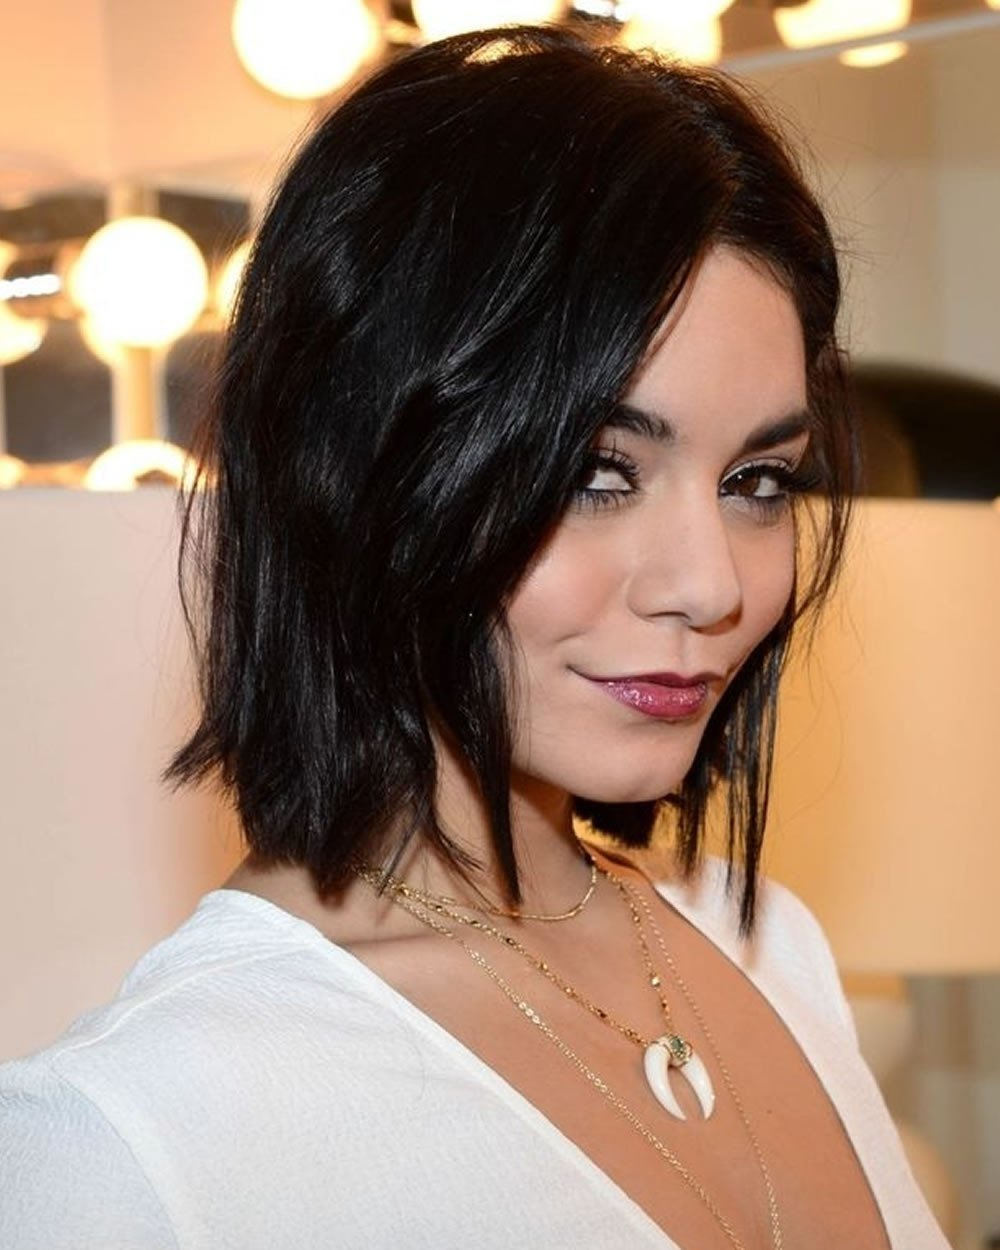 The Best Short Haircuts 2019 Pixie And Bob Hairstyles For Short Hair 2019 – Hairstyles Pictures